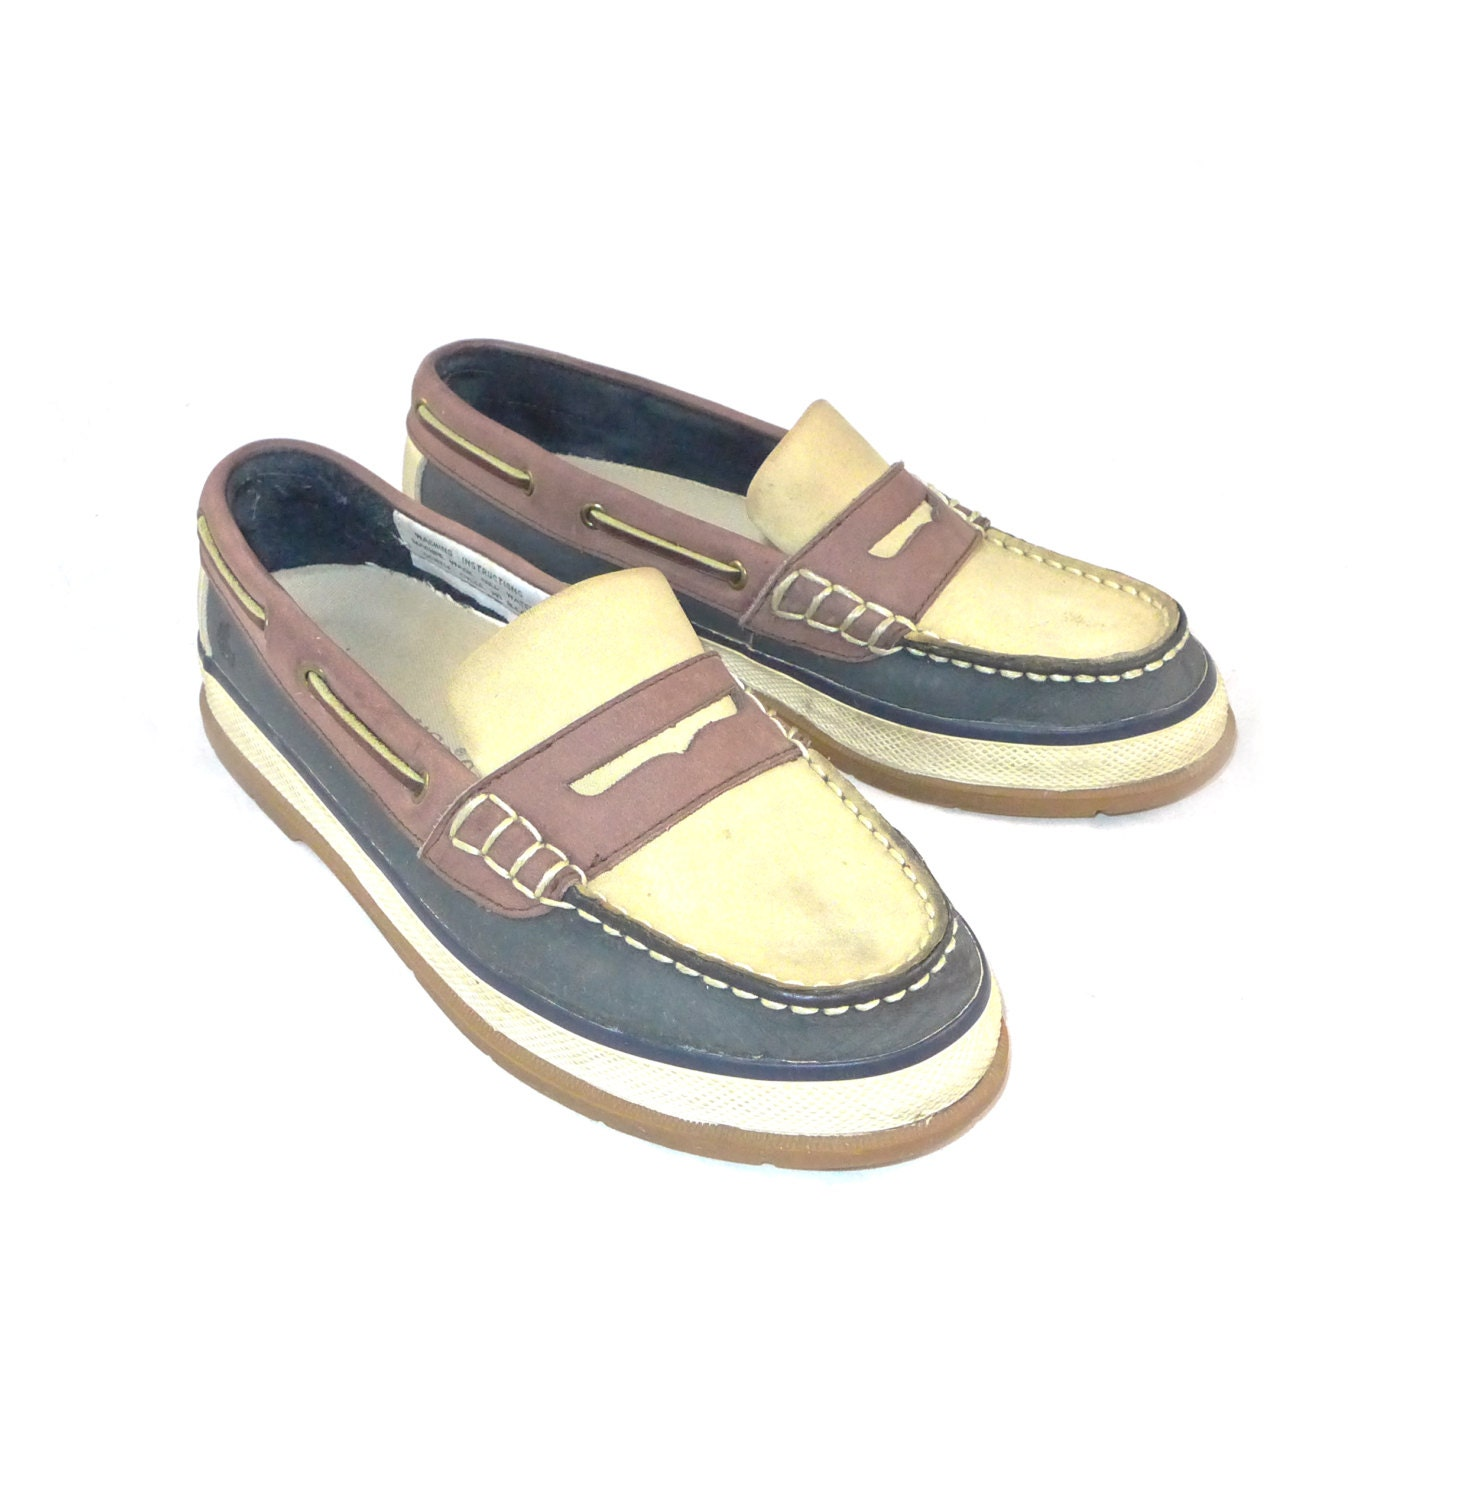 Bass vintage ivory / tan / navy blue boat shoes - thick leather